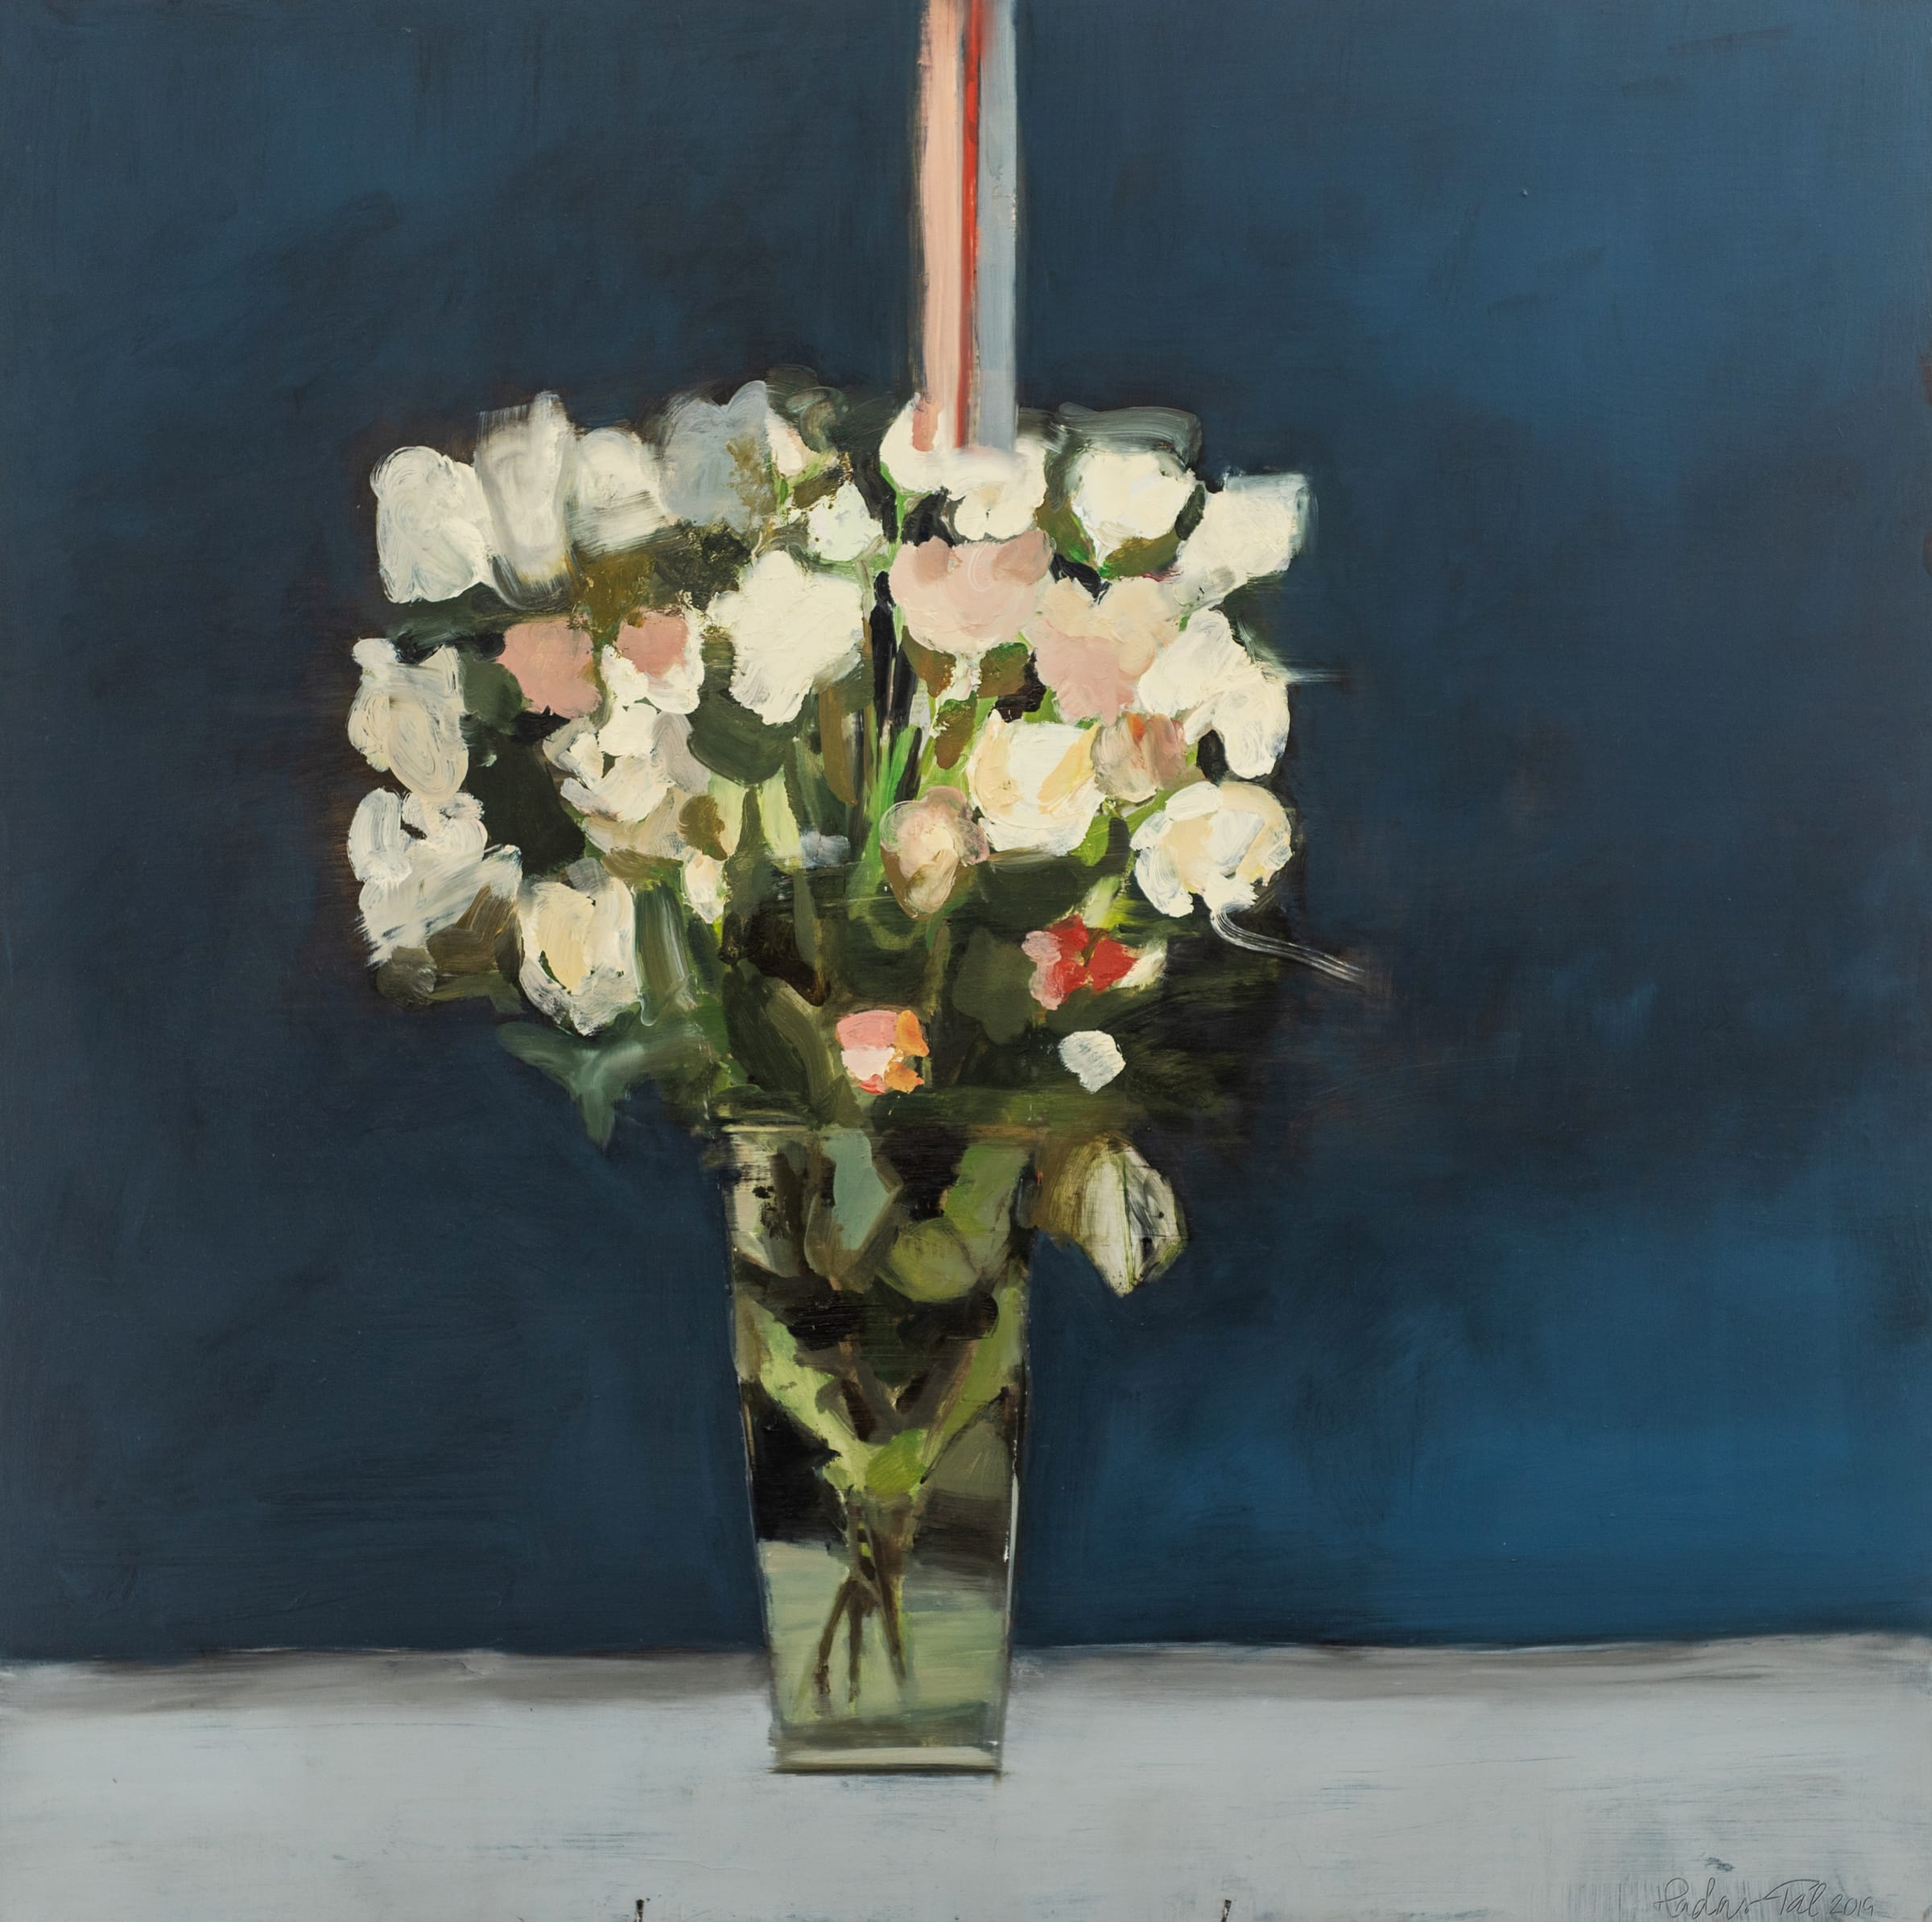 """<span class=""""link fancybox-details-link""""><a href=""""/artists/56-hadas-tal/works/701-hadas-tal-white-roses/"""">View Detail Page</a></span><div class=""""artist""""><strong>Hadas Tal</strong></div> <div class=""""title""""><em>White Roses</em></div> <div class=""""medium"""">Oil on Wood Panel </div> <div class=""""dimensions"""">30 x 30 inches <br /> SOLD</div>"""